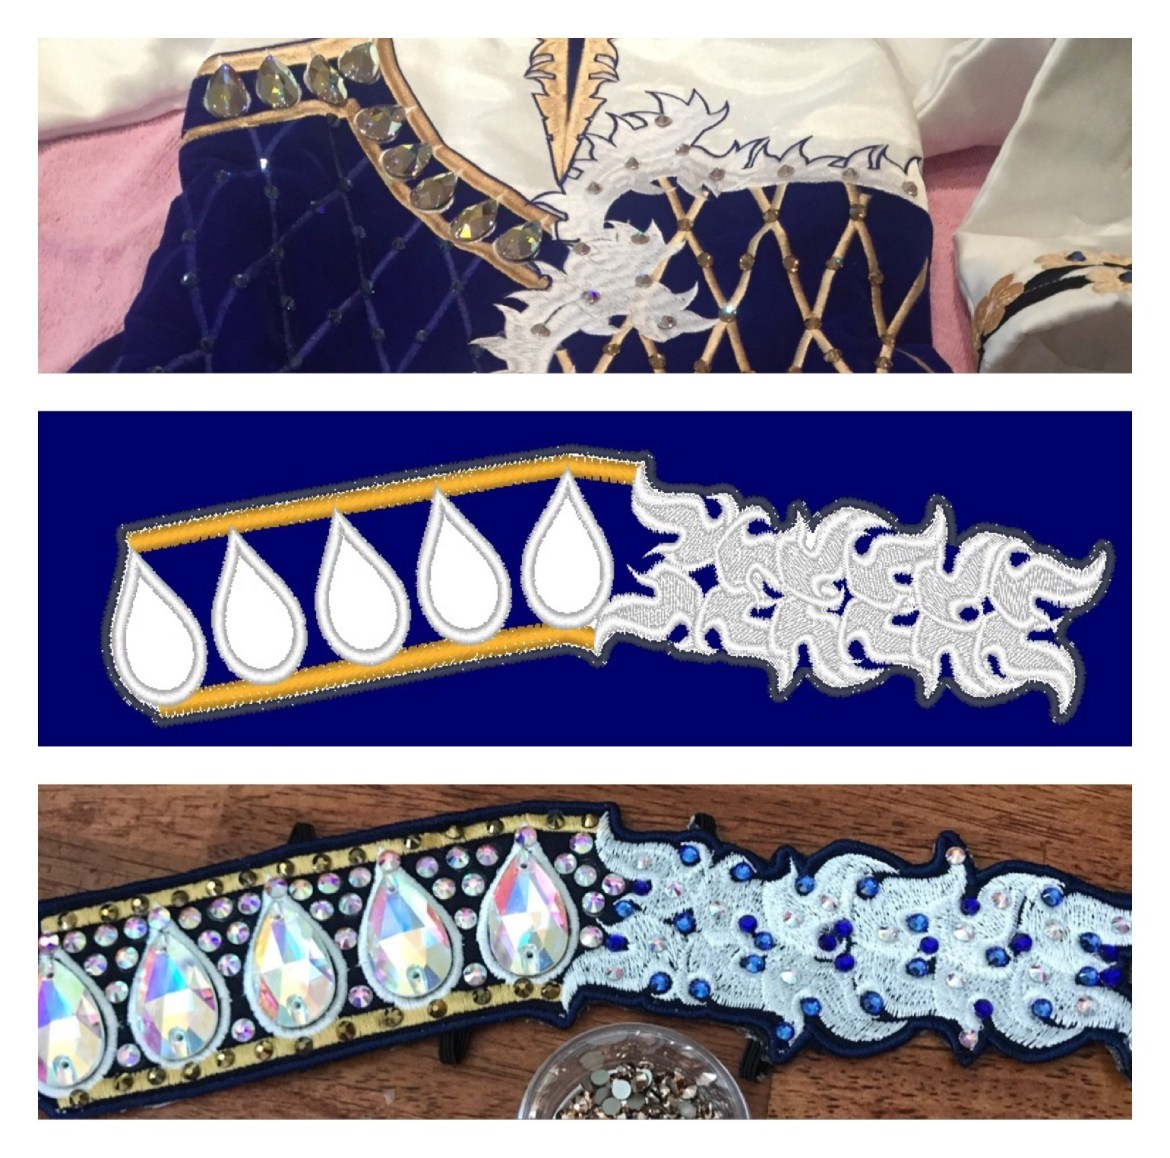 Custom designed side tiara to match your solo costume. $20 deposit for the design required!